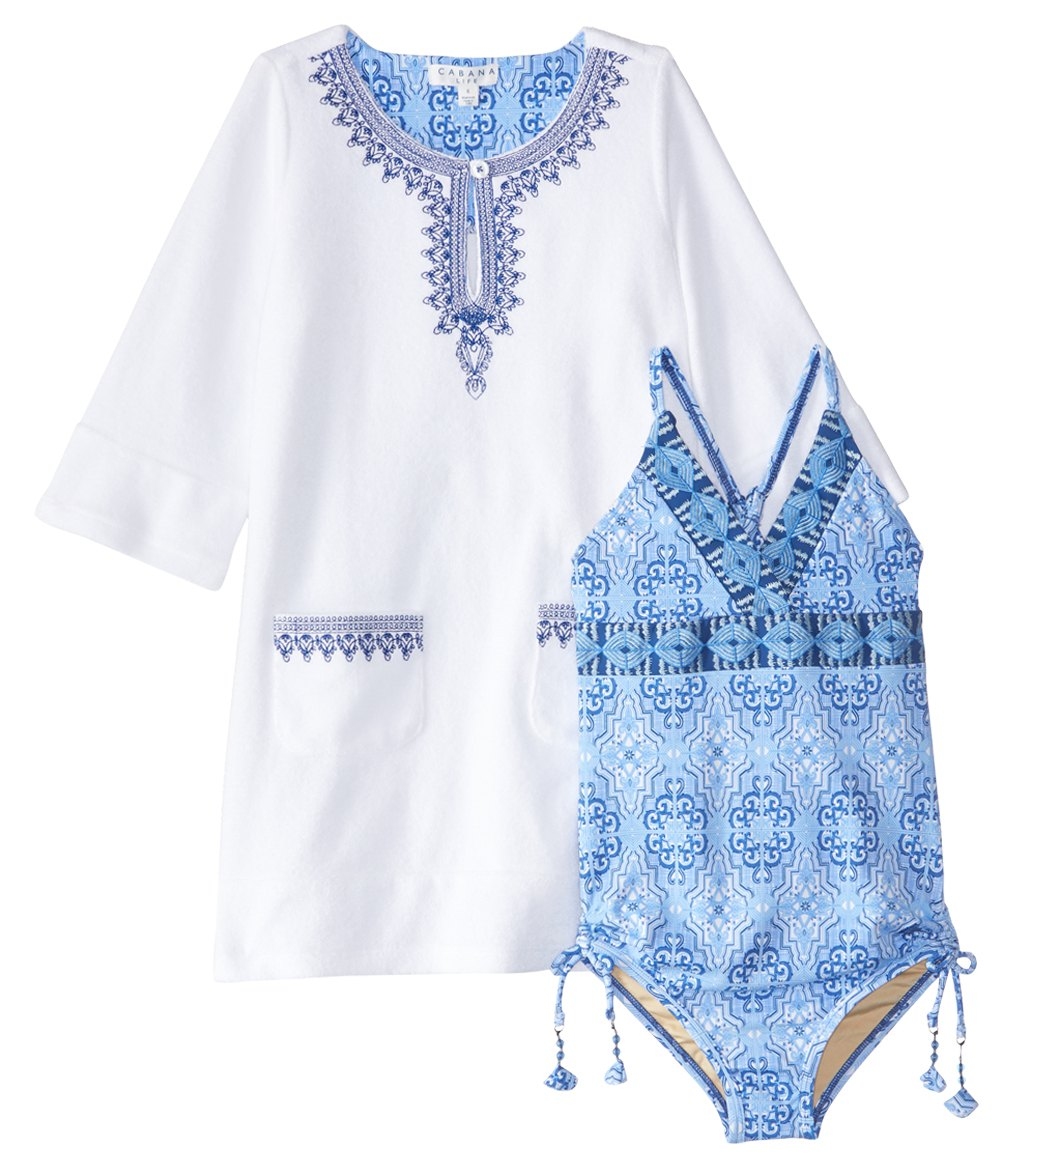 98cdb612eca4f Cabana Life Girls' UPF 50+ Moroccan Tile Swimsuit & Terry Cover Up Set  (6mos-6X) at SwimOutlet.com - Free Shipping